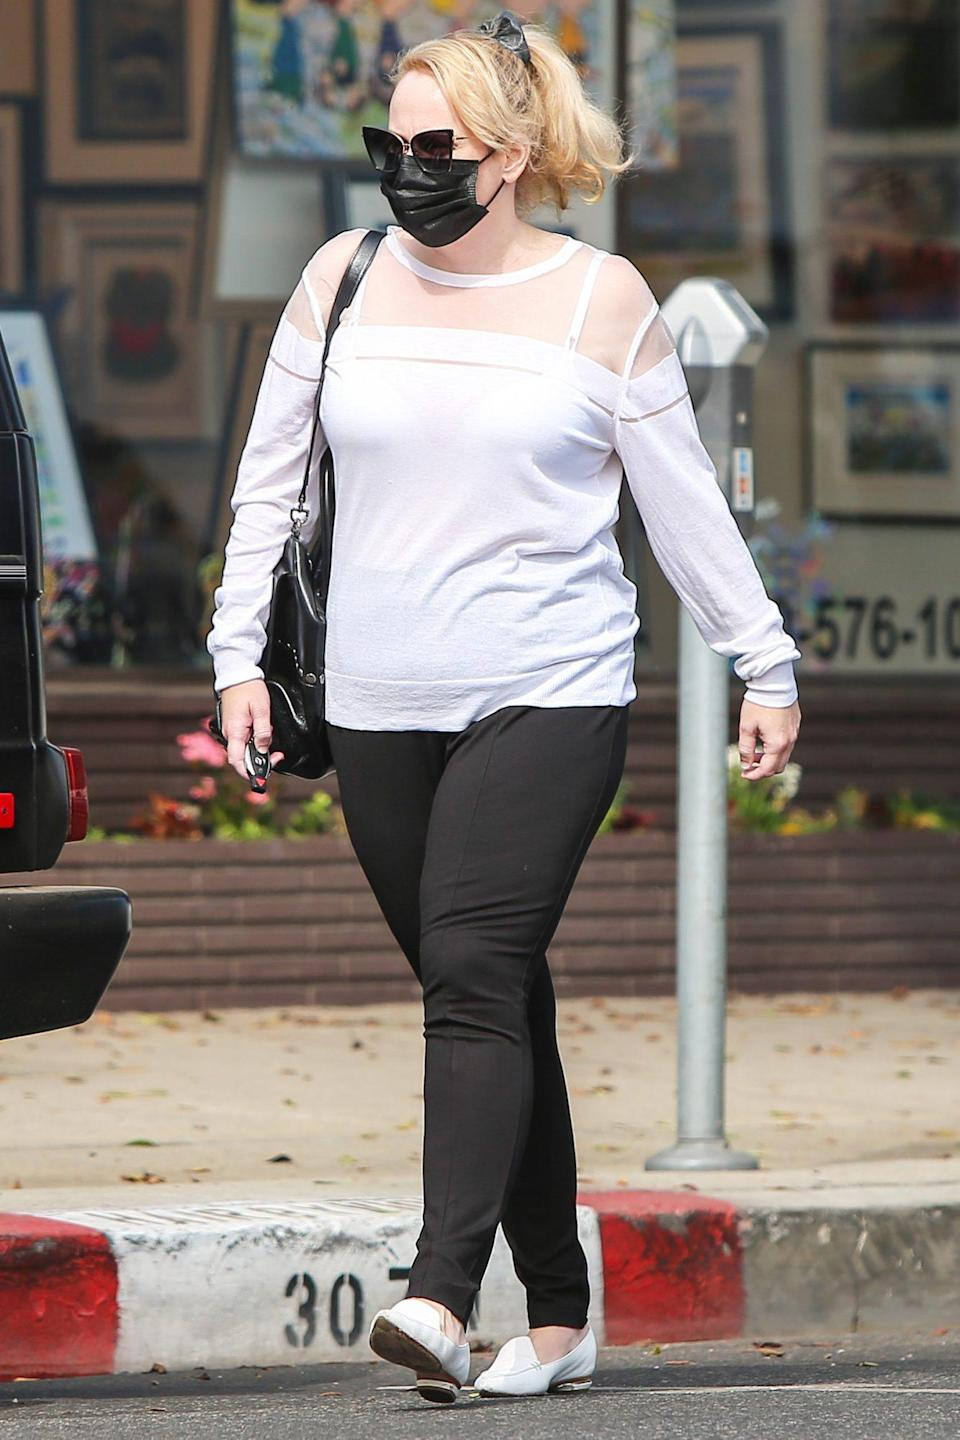 <p>Rebel Wilson is seen out and about in a black-and-white outfit on Tuesday in L.A. </p>